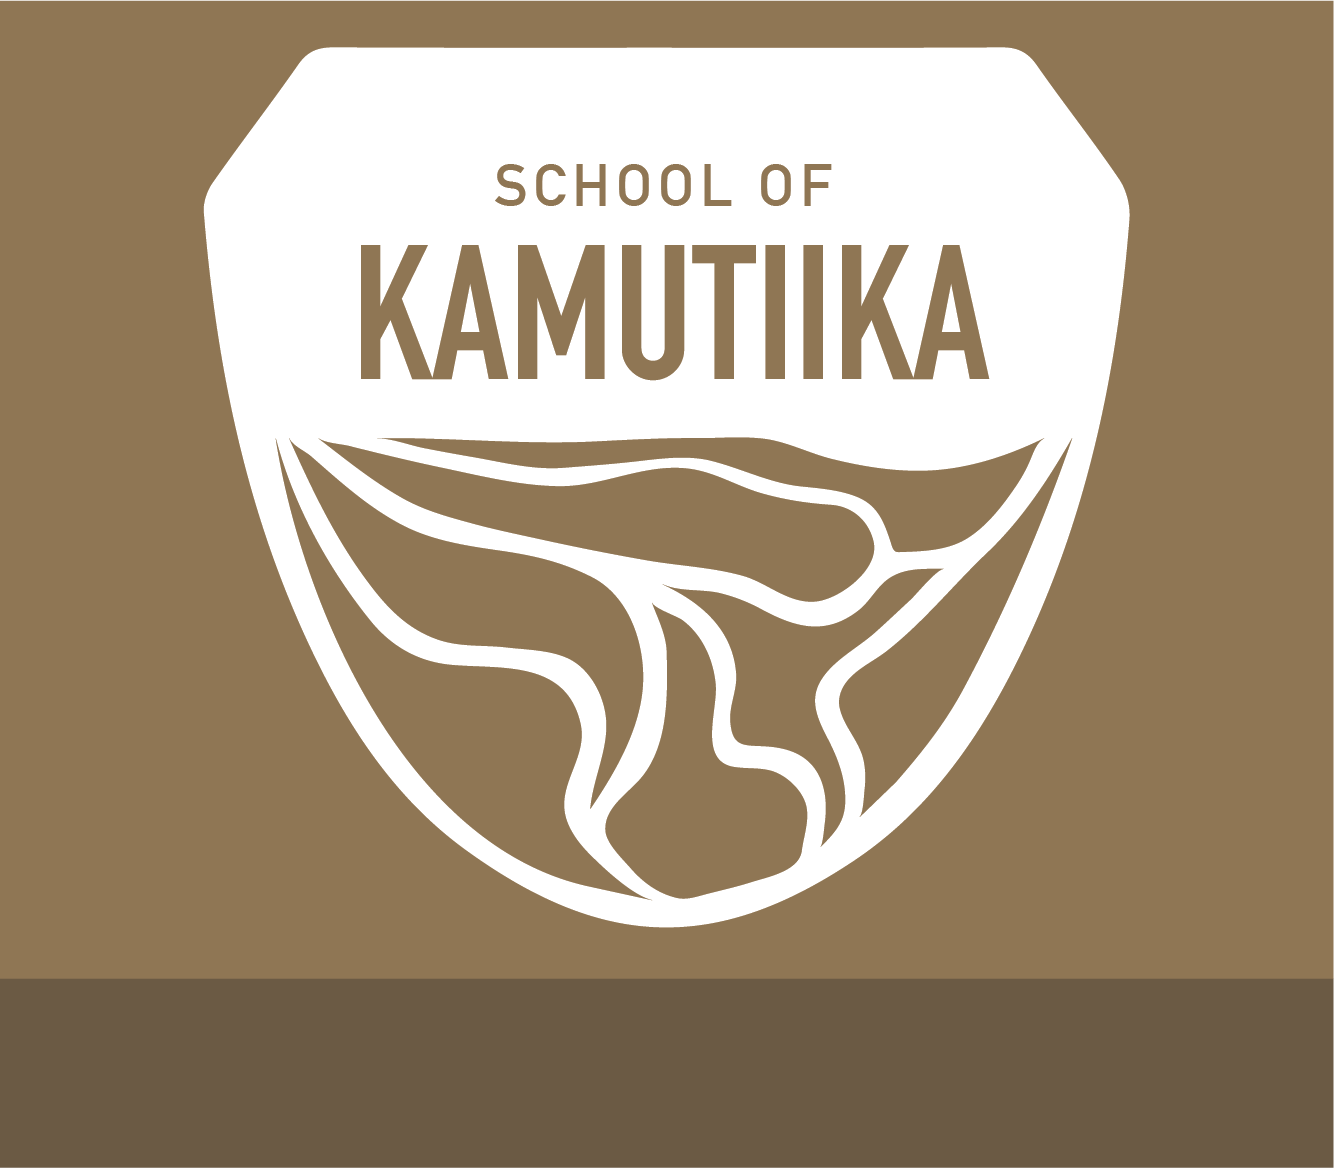 School of kamutiika